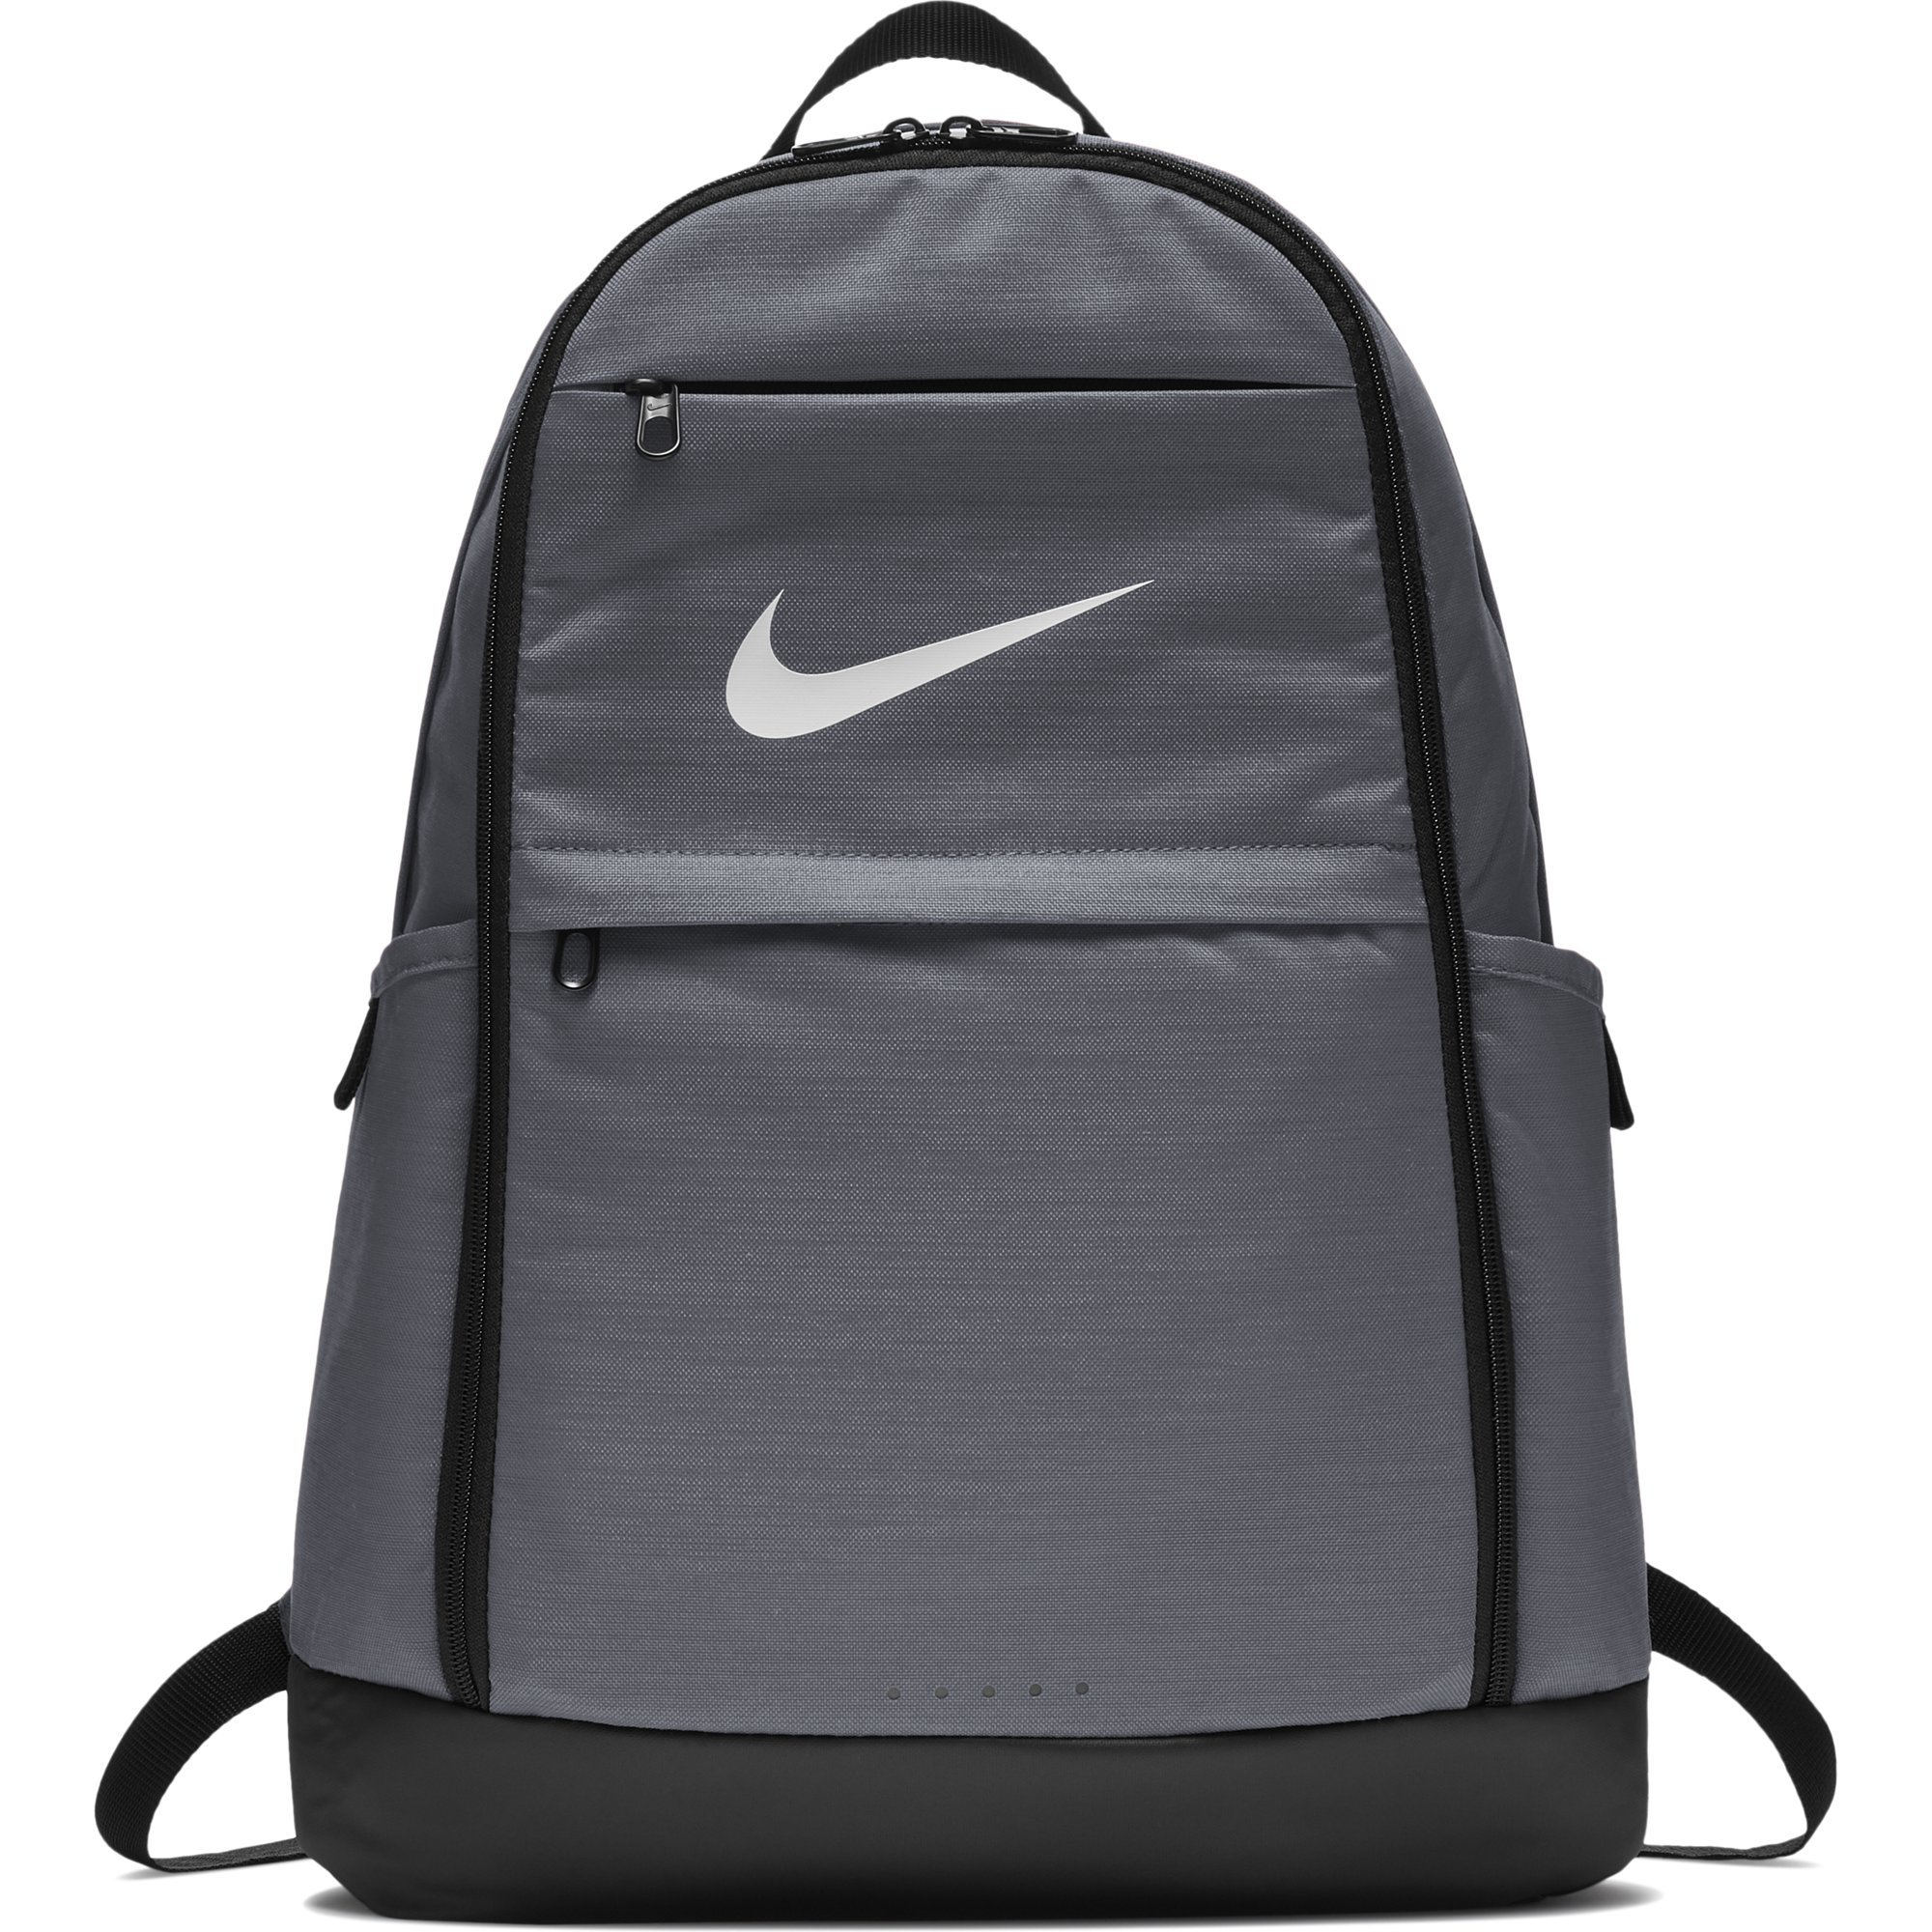 Nike Brasilia Training Backpack, Extra Large Backpack Built for Secure Storage with a Durable Design, Flint Grey/Black/White by Nike